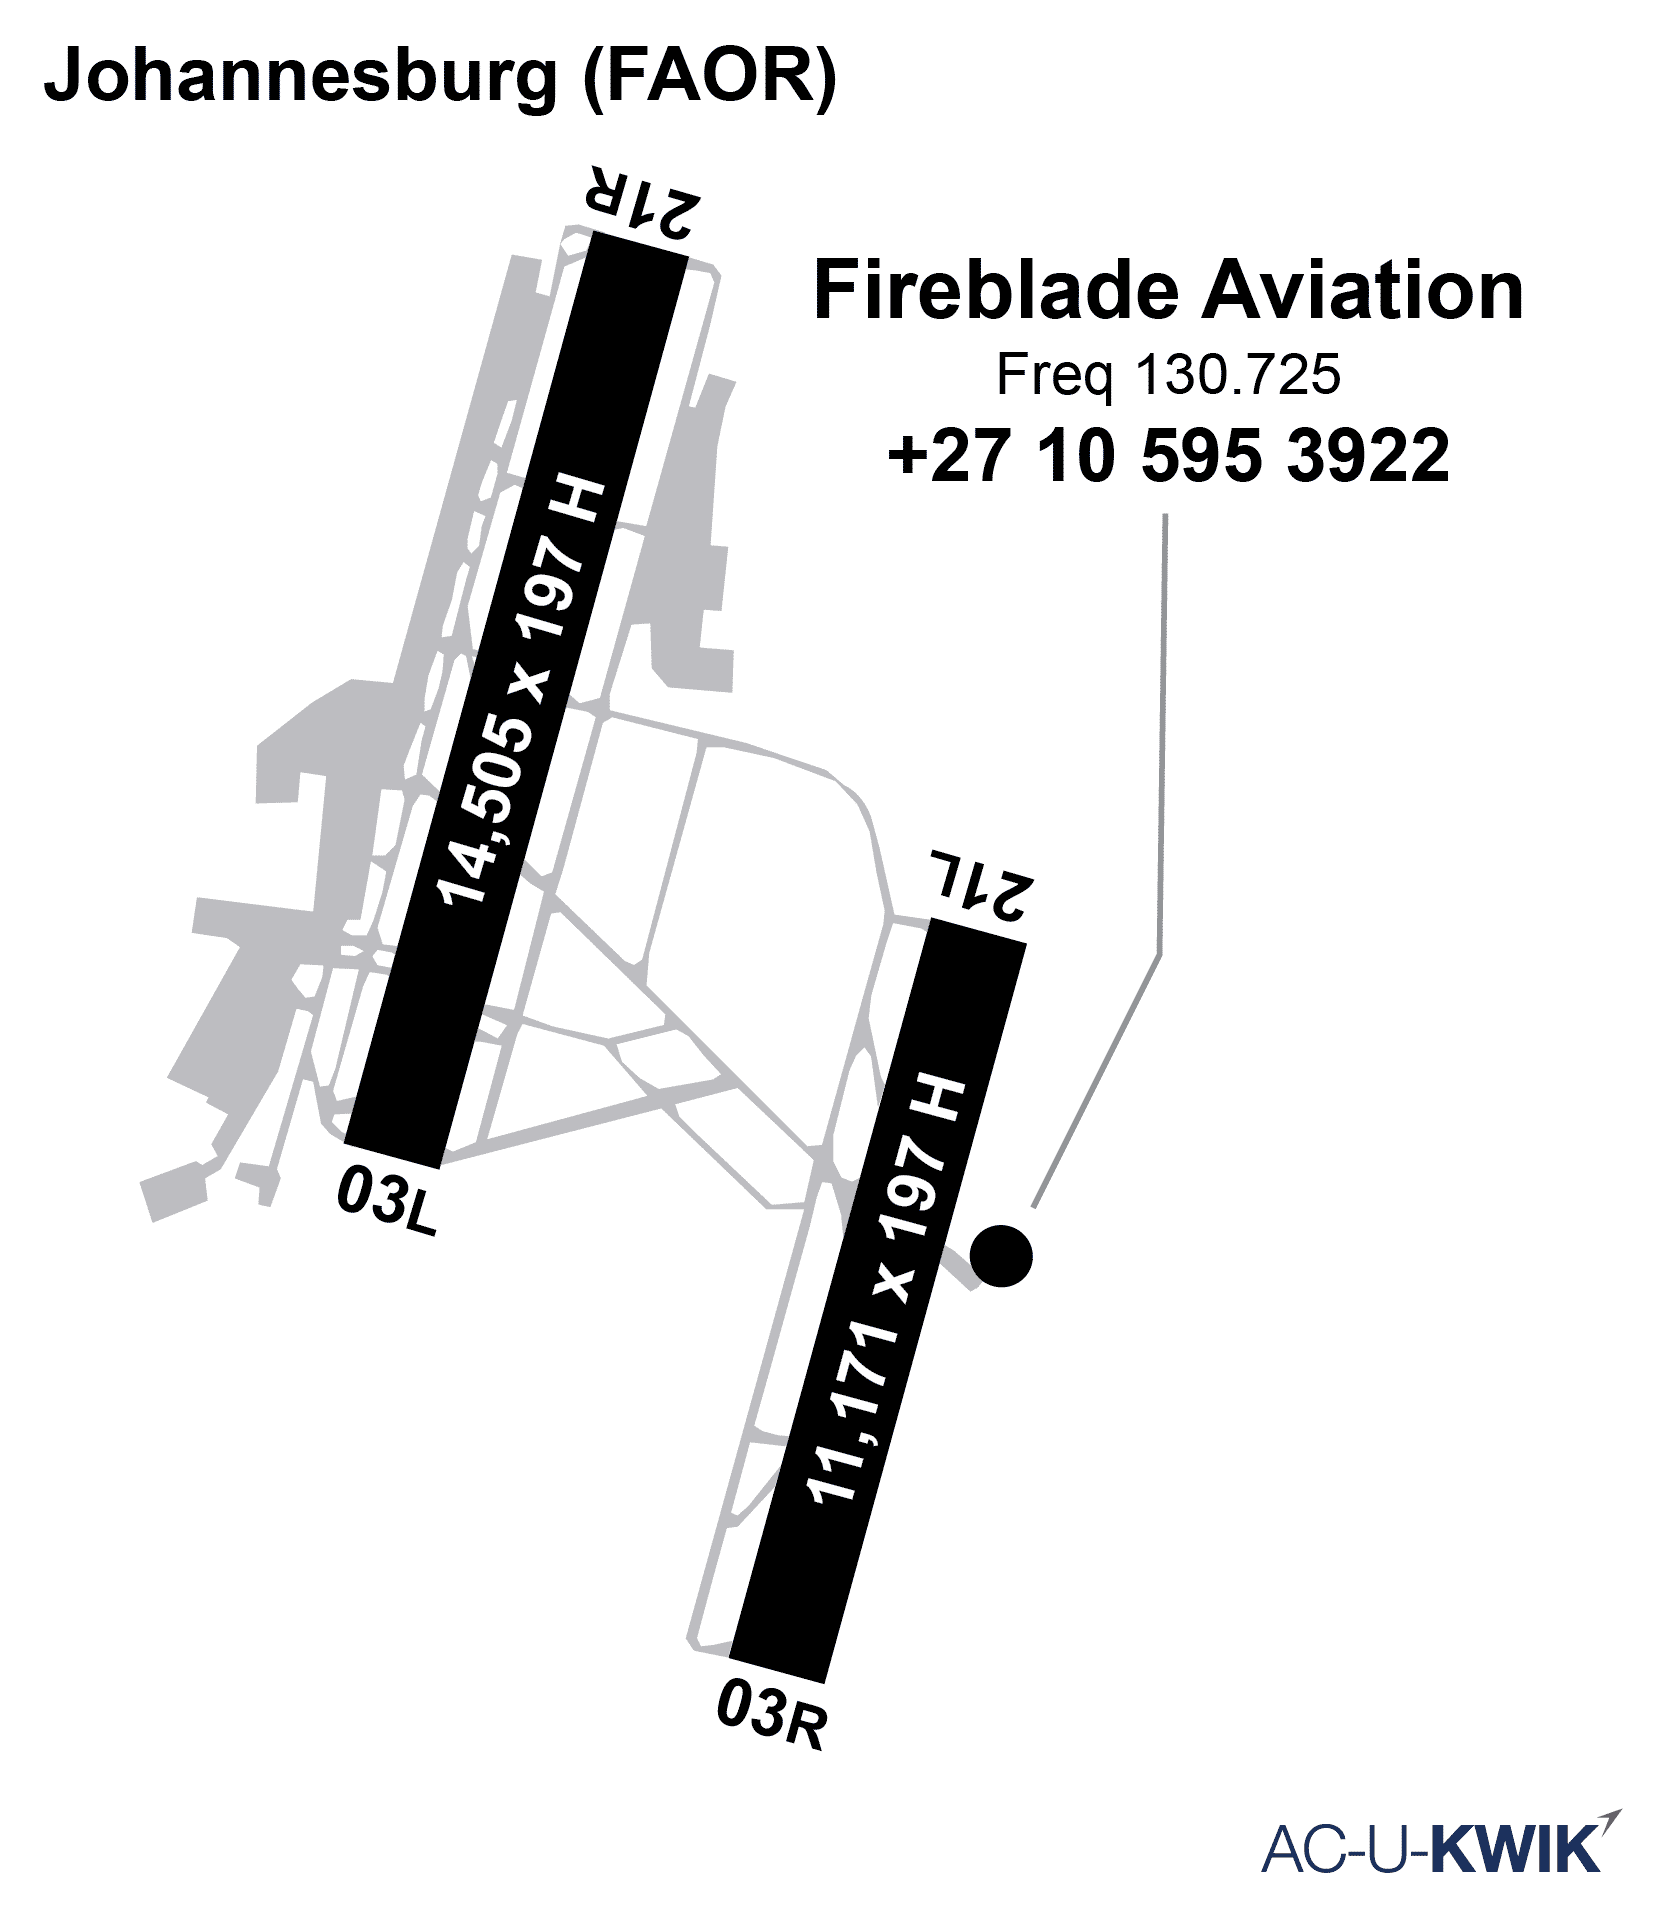 Fireblade Aviation AC-U-KWIK Map